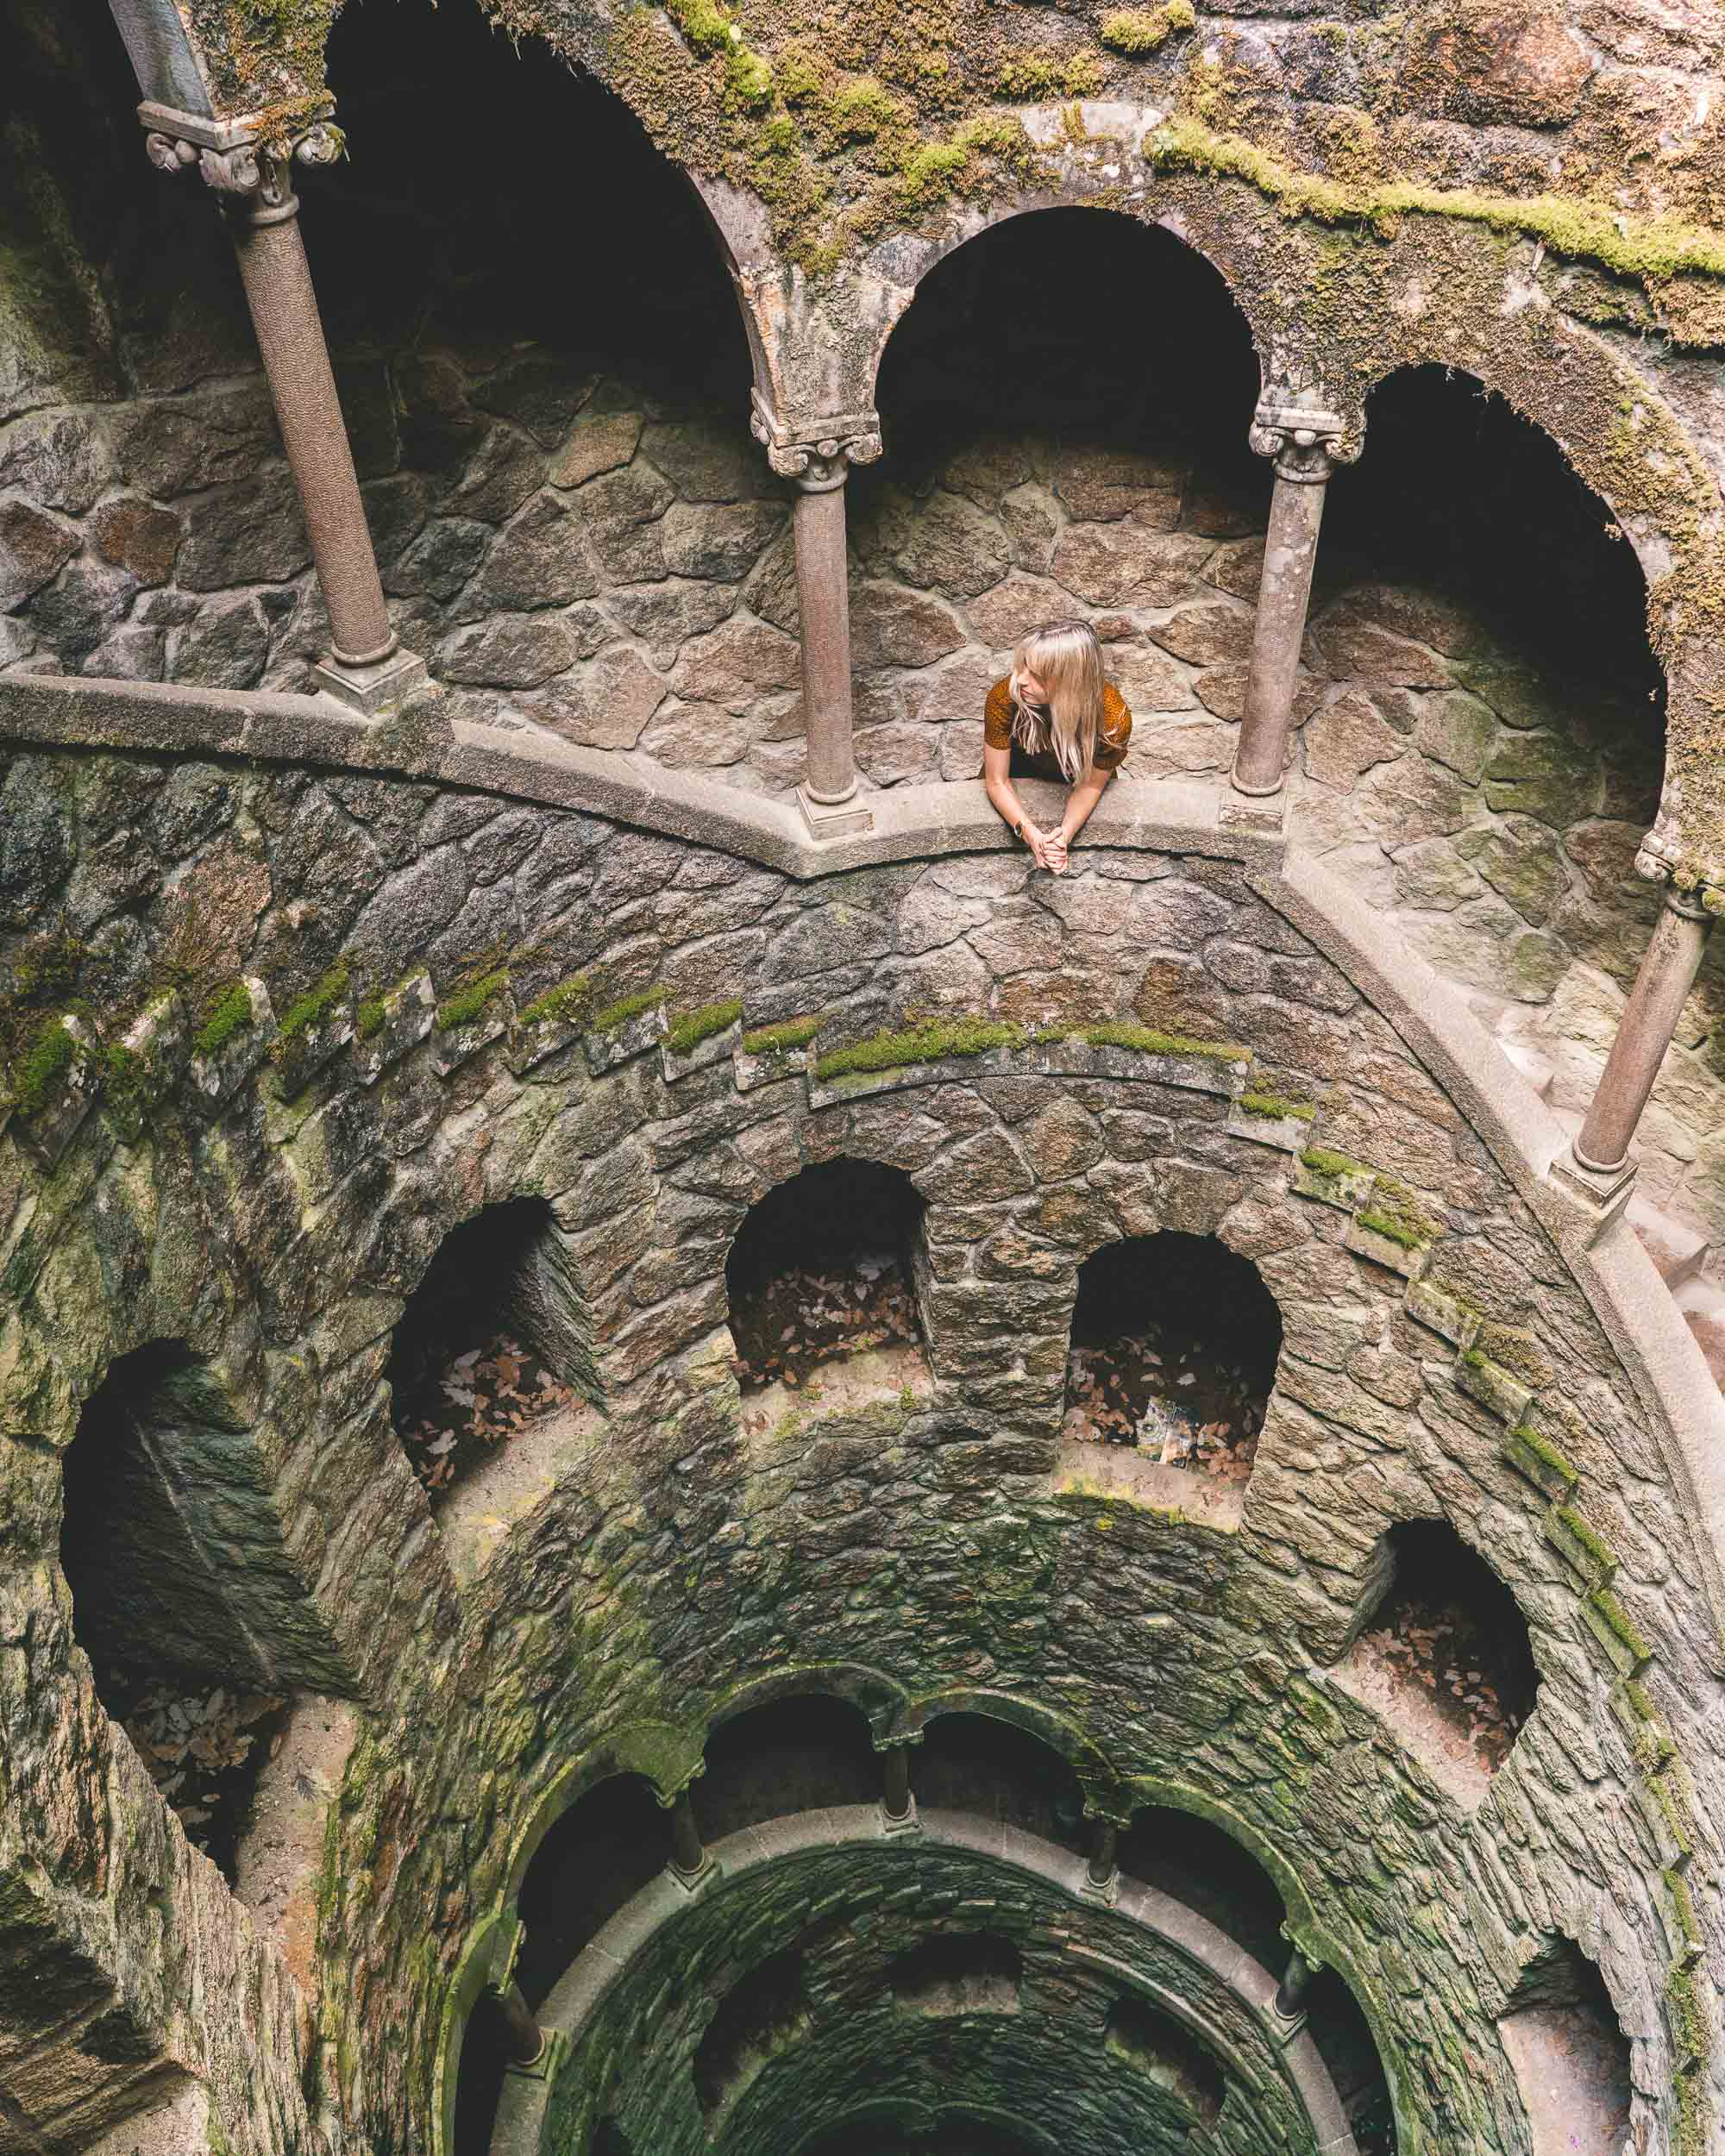 Spiraling initiation well at Quinta Da Regaleira near Lisbon in Sintra, Portugal